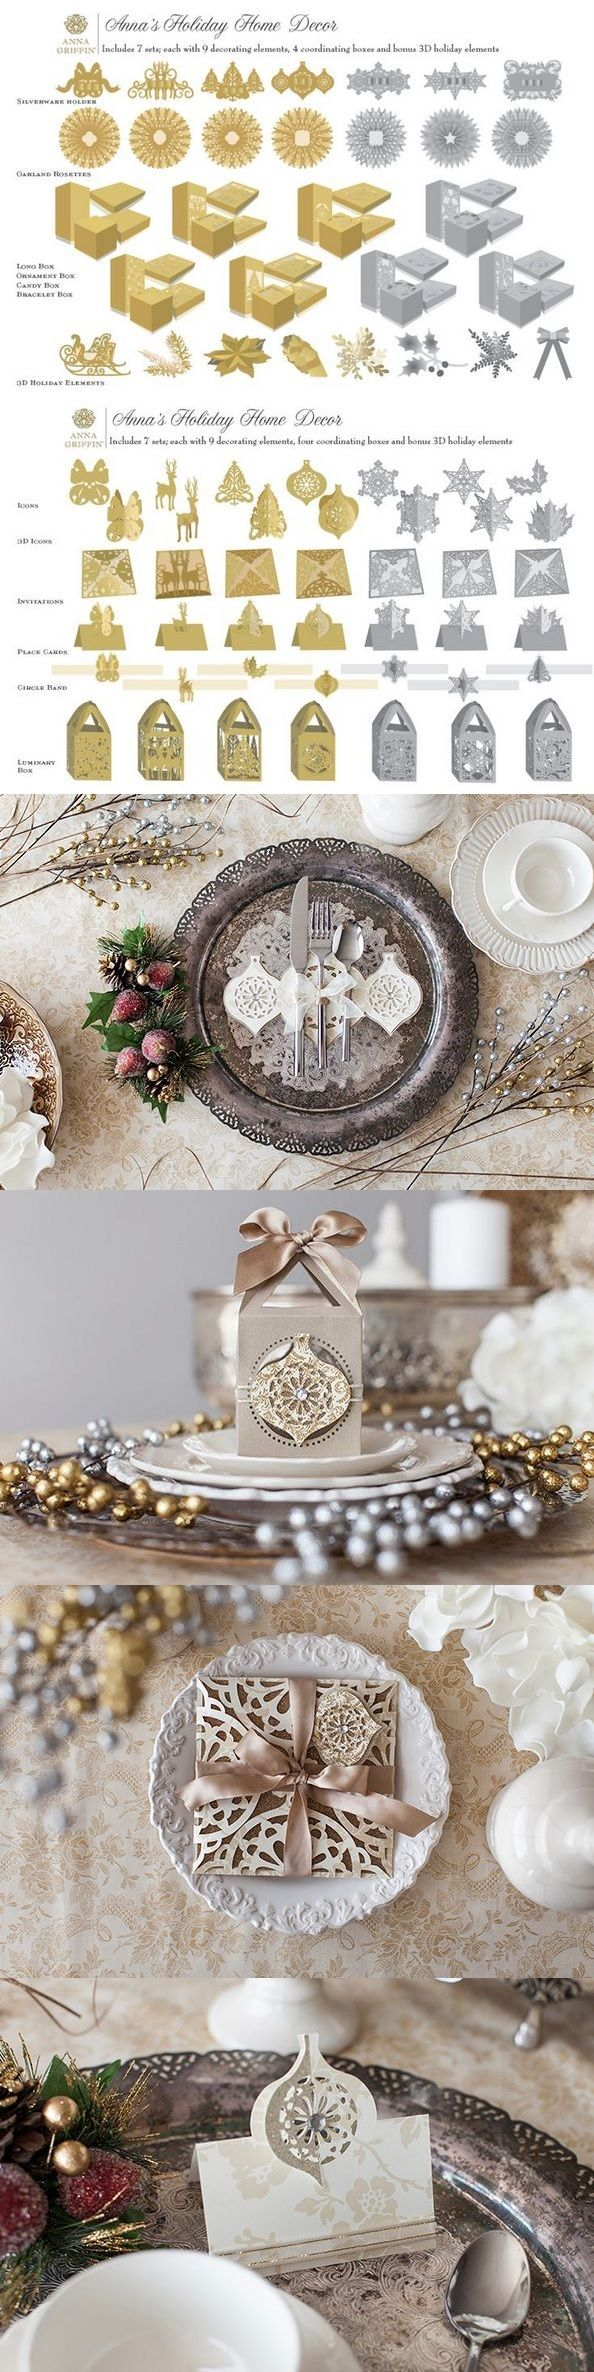 Holiday Home Decorating Ideas Part - 46: Annau0027s Holiday Home Décor | September | 2015 | Annau0027s Blog Http://blog